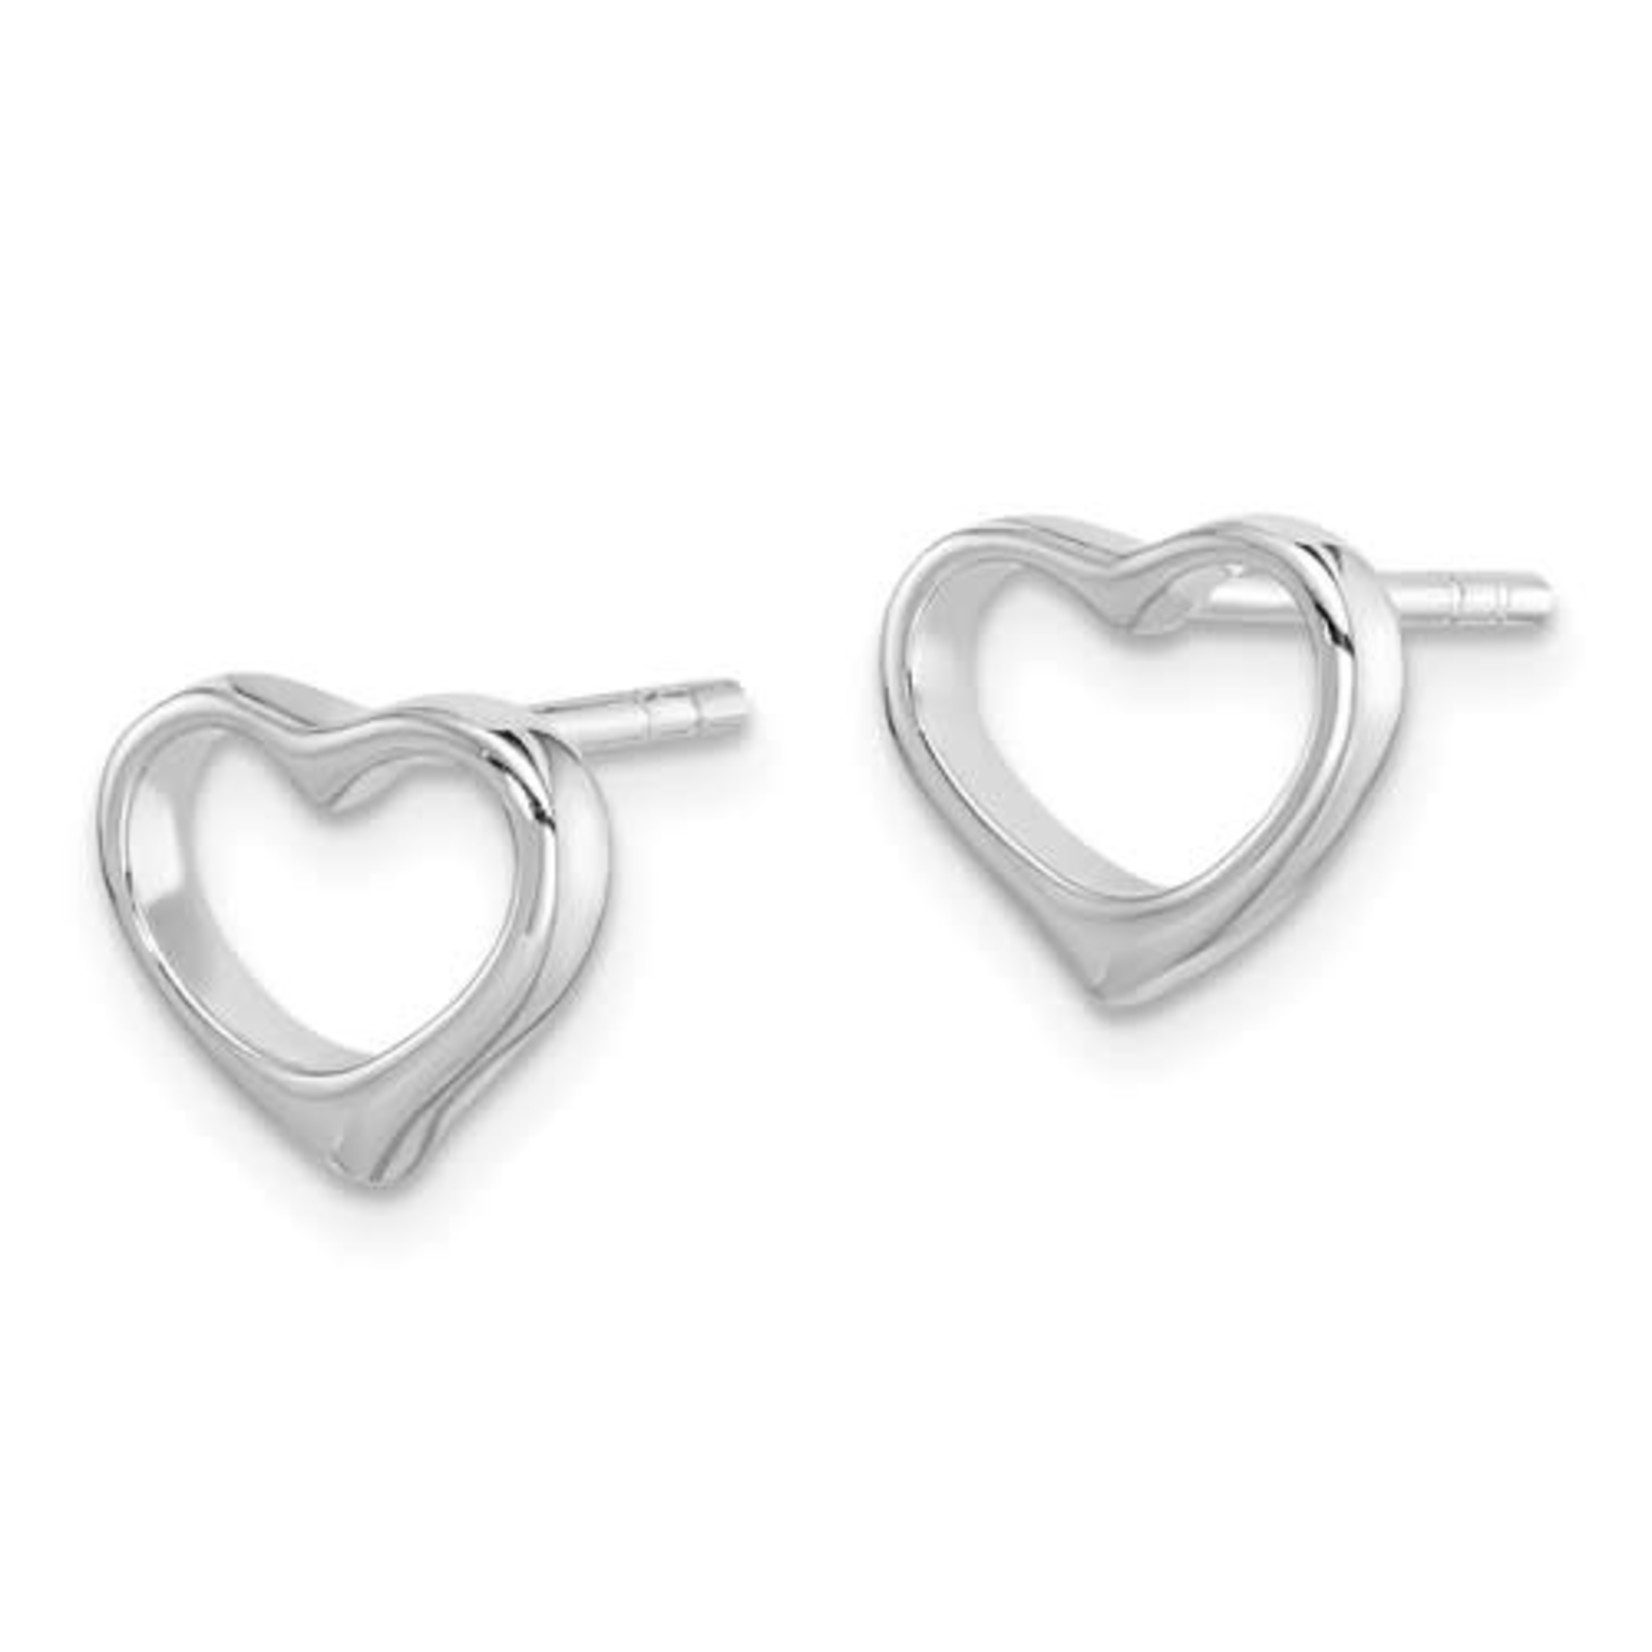 This Is Life Open Heart Sterling Silver Earrings